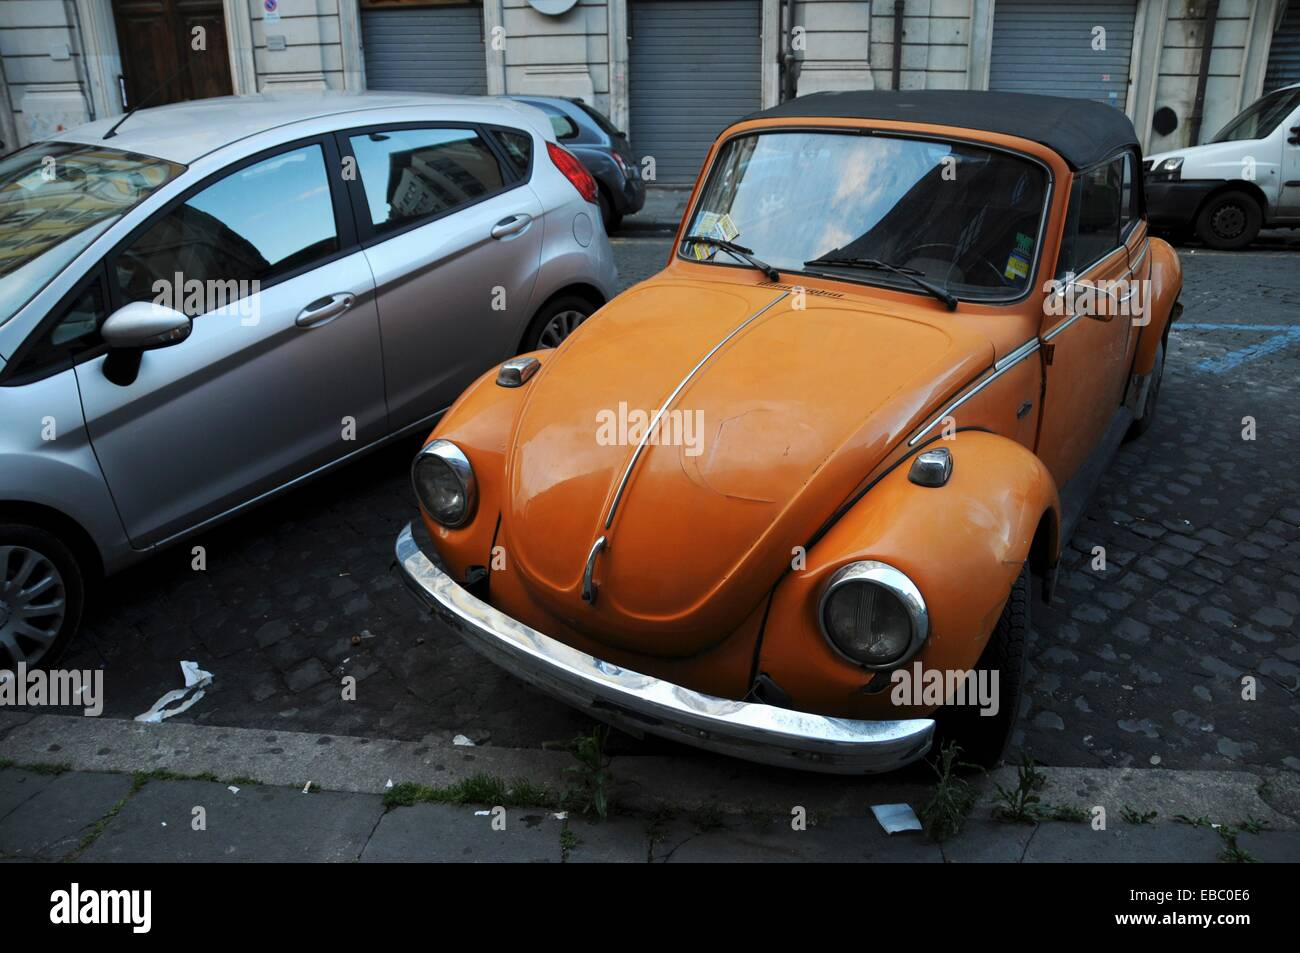 Old Orange VW Beetle in Rome - Stock Image